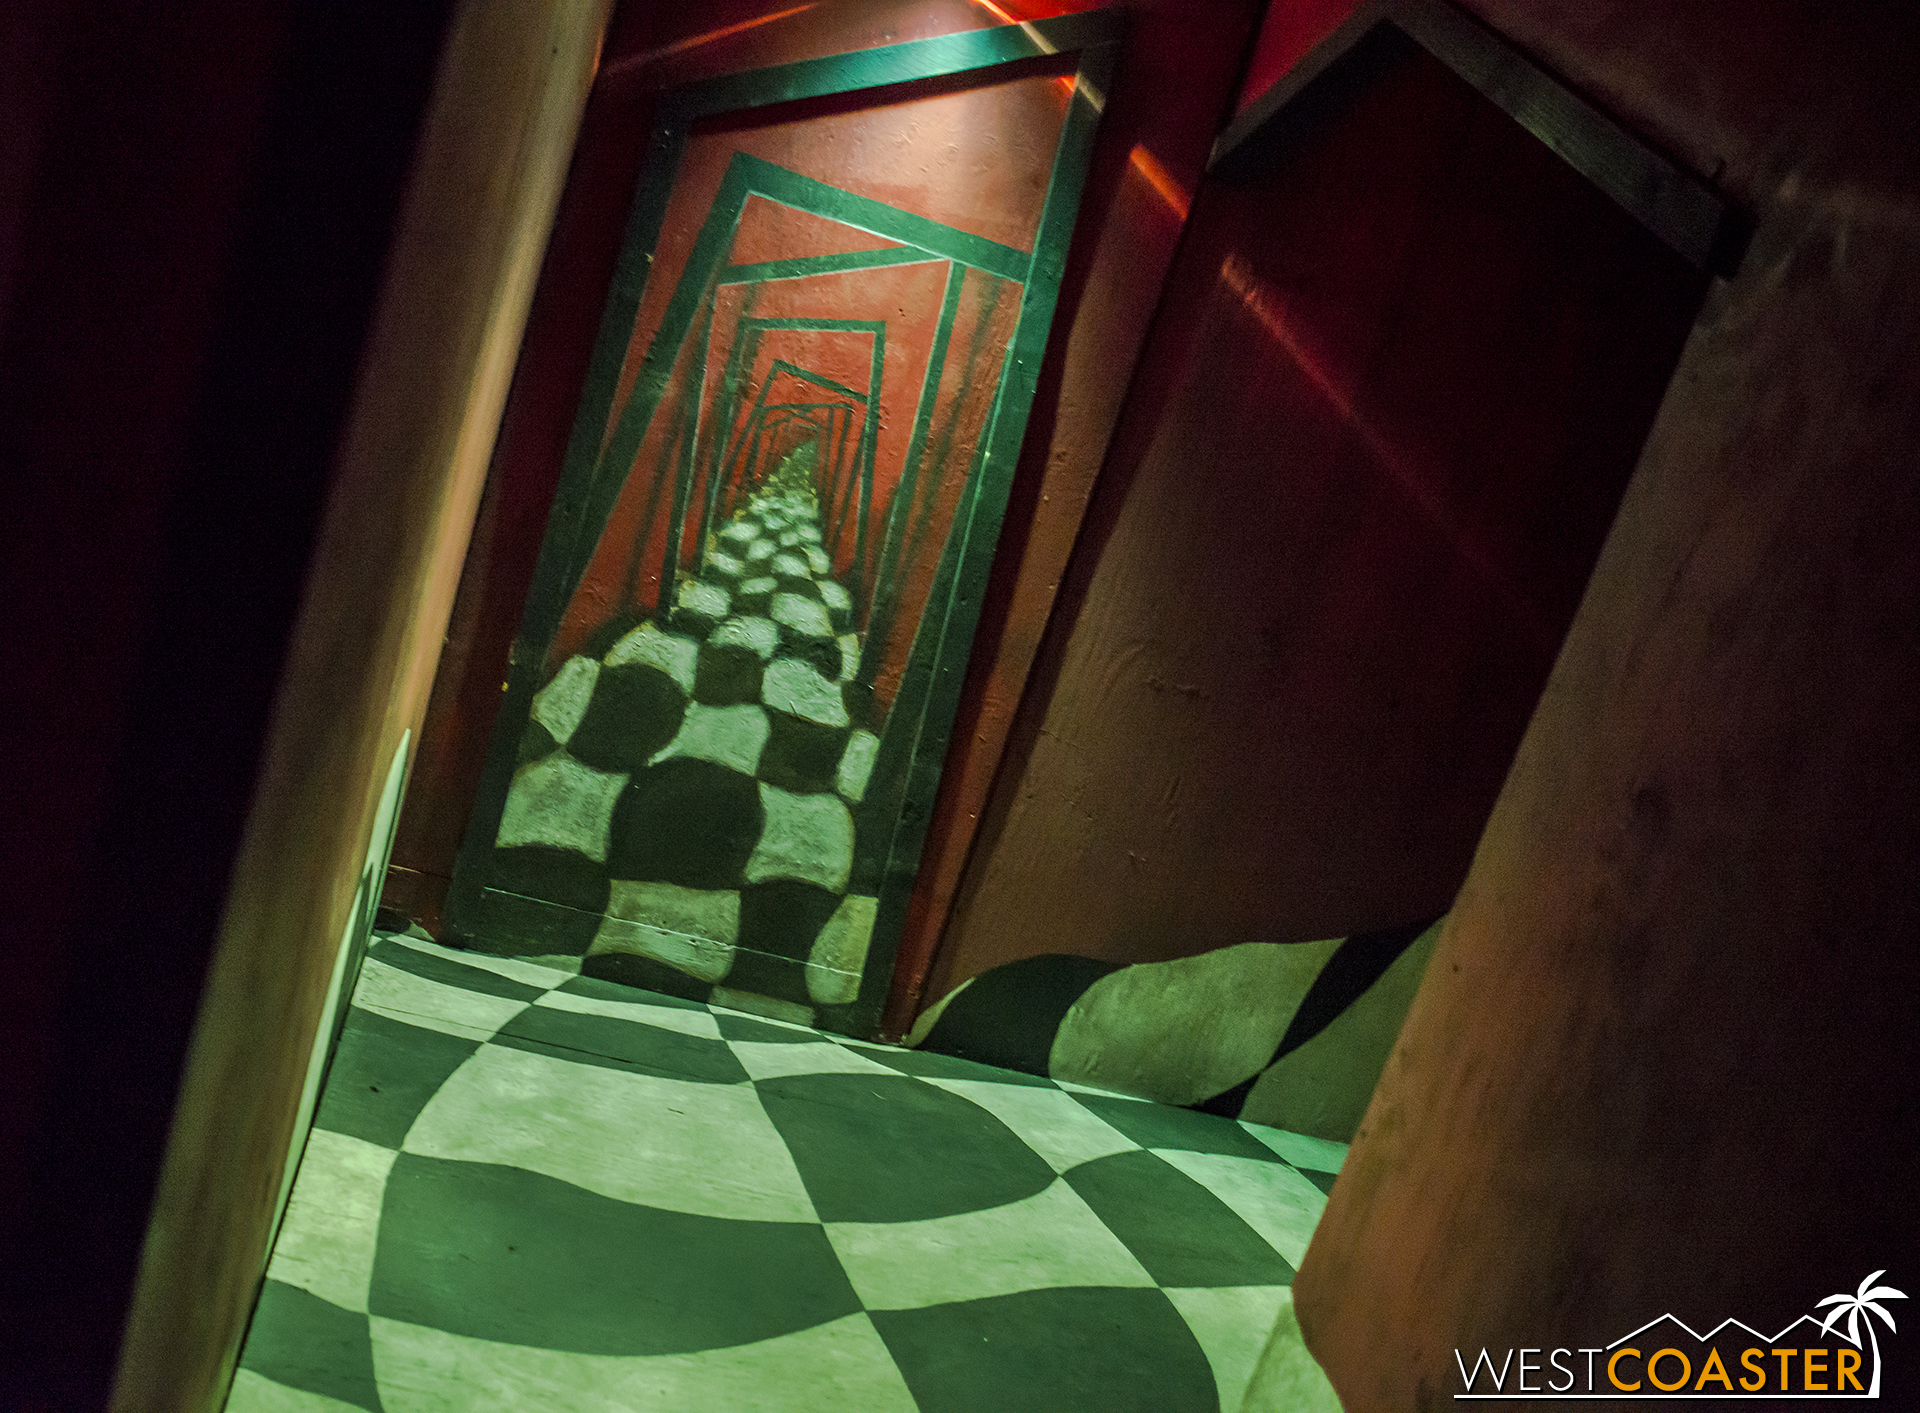 Pictures don't do the maze design justice. In three dimension, the approach and angles of many parts of the this maze create some cool and disorienting illusions.